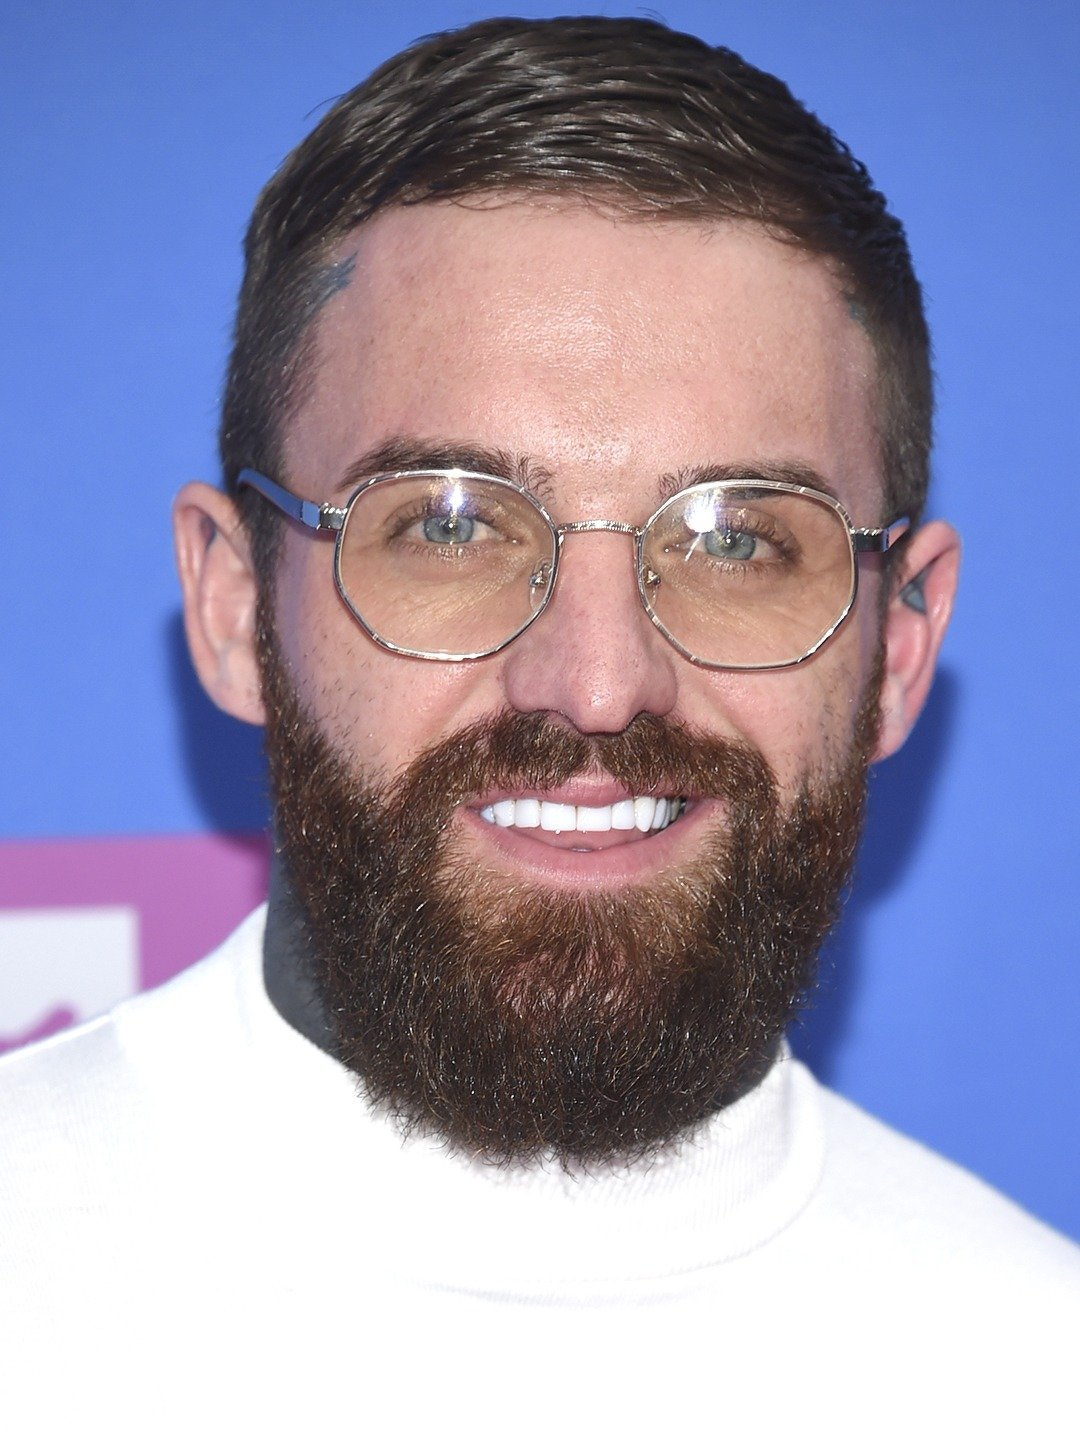 Aaron Chalmers